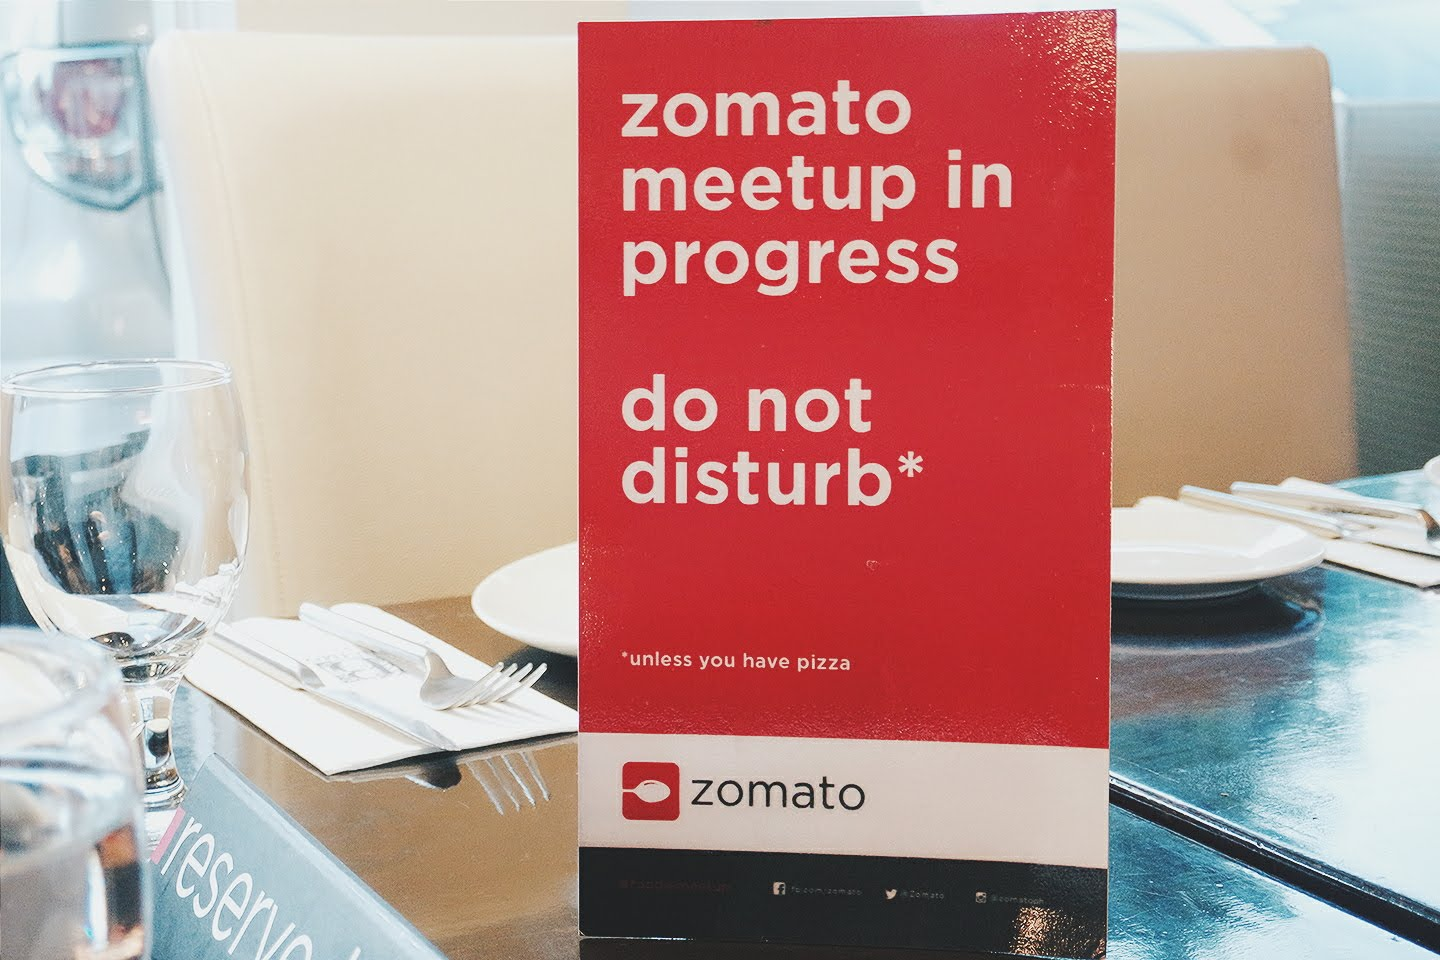 My first zomato foodie meetup experience pinkislovebynix before i share my experience on my first foodie meetup lemme share with you first how zomato has been part of my food journey stopboris Image collections